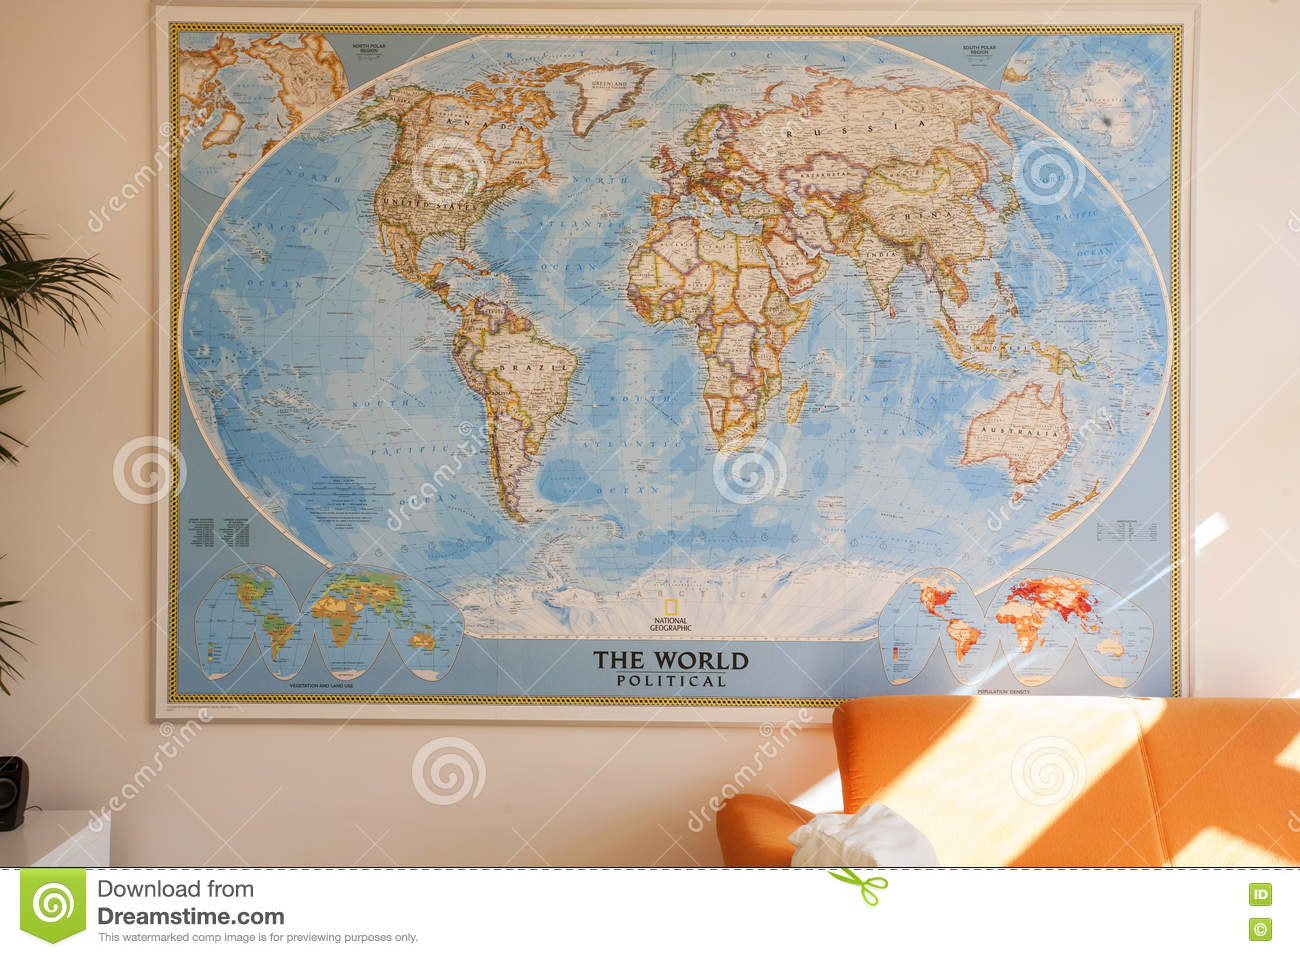 National Geographic World Political Map.National Geographic Wall Map Editorial Photography Image Of Earth